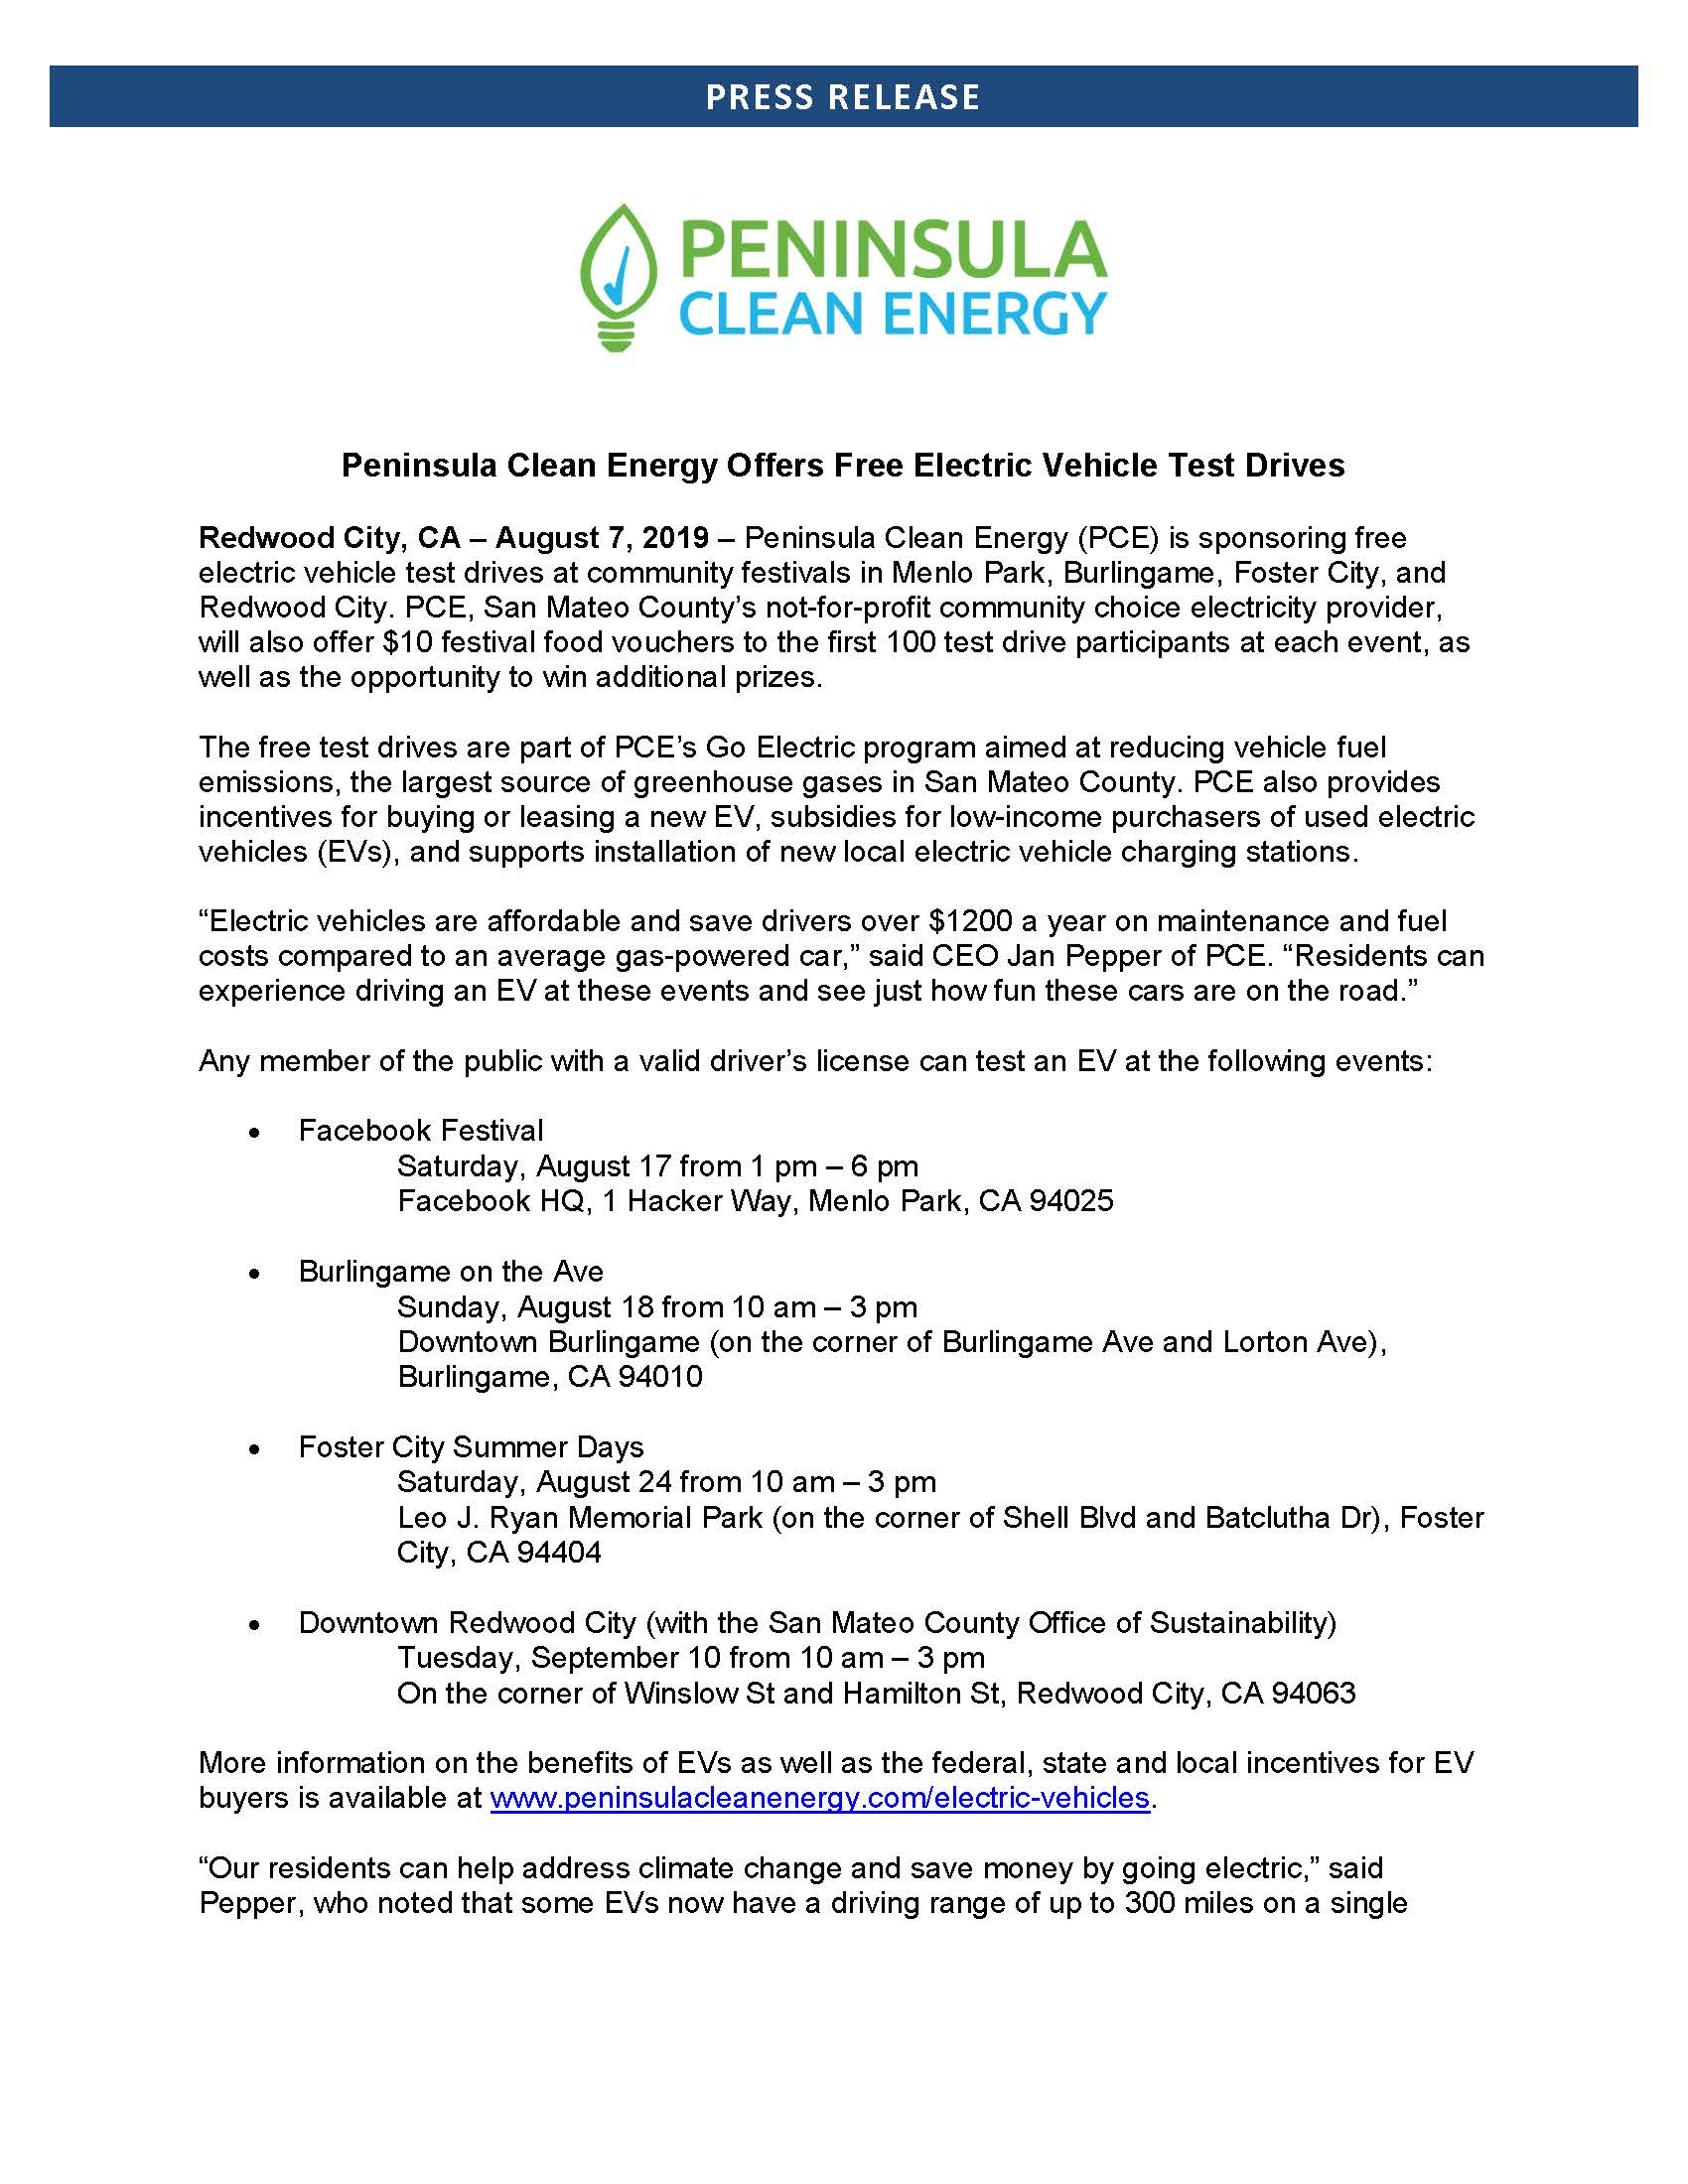 PCE Press Release Free EV Test Drive Events _Page_1